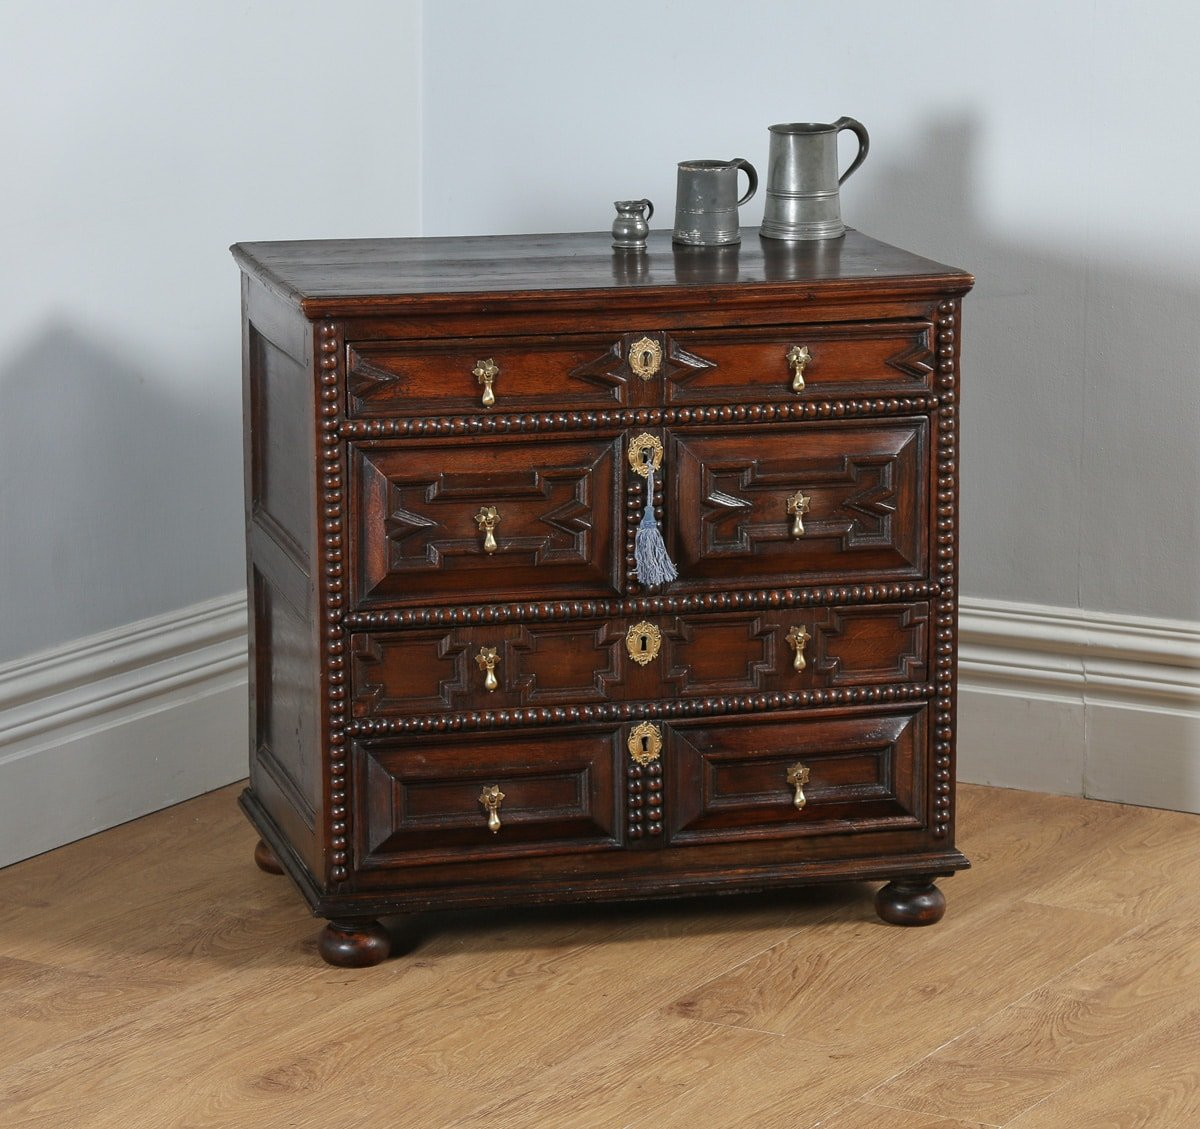 william and mary chair wheelchair seat belt antique english oak chest of drawers circa